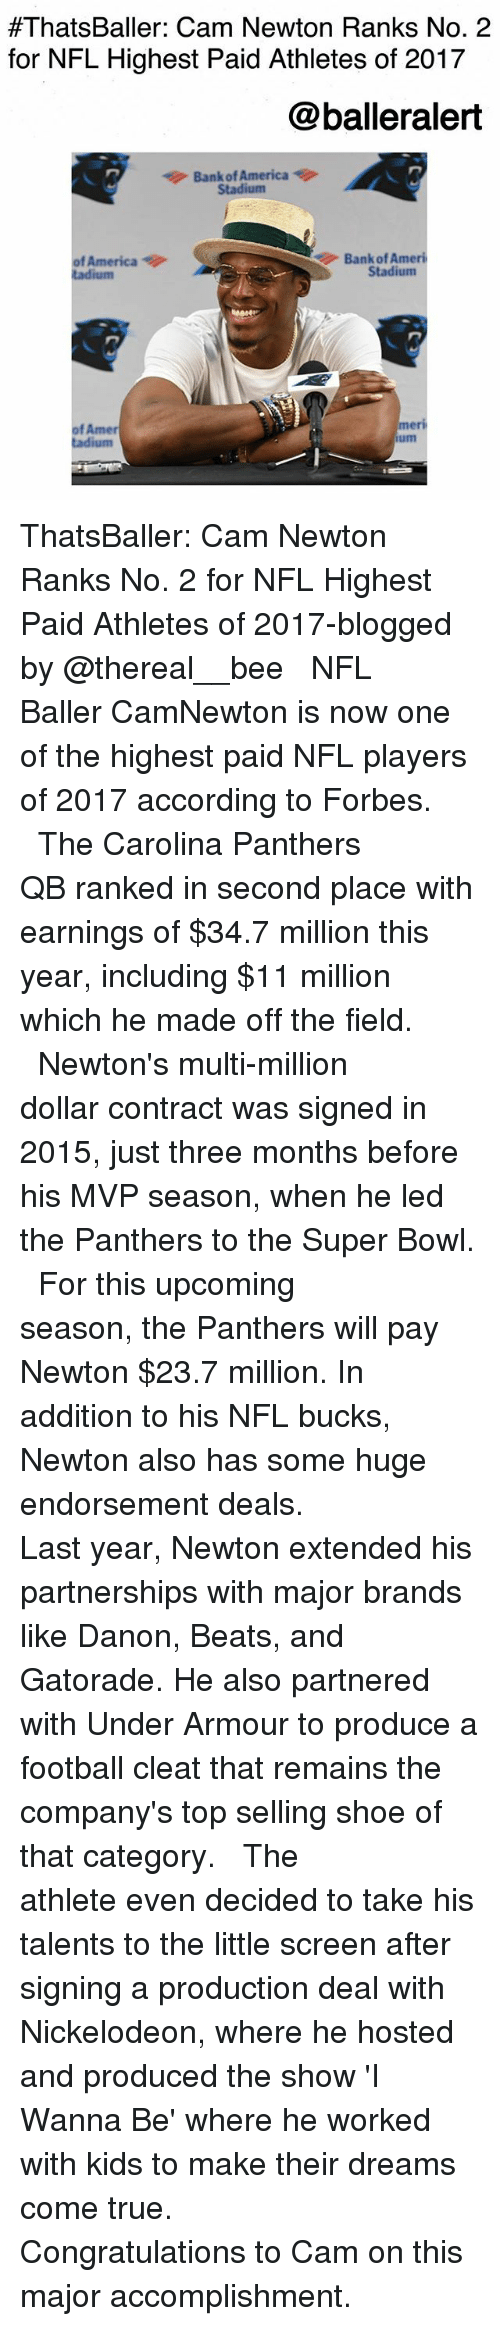 America, Cam Newton, and Carolina Panthers:  #ThatsBaller: Cam Newton Ranks No. 2  for NFL Highest Paid Athletes of 2017  @balleralert  Bank of America  Stadium  Bank of Ameri  of America  tadium  Stadium  of Amer  tadium  ri  um  me ThatsBaller: Cam Newton Ranks No. 2 for NFL Highest Paid Athletes of 2017-blogged by @thereal__bee ⠀⠀⠀⠀⠀⠀⠀⠀⠀ ⠀⠀ NFL Baller CamNewton is now one of the highest paid NFL players of 2017 according to Forbes. ⠀⠀⠀⠀⠀⠀⠀⠀⠀ ⠀⠀ The Carolina Panthers QB ranked in second place with earnings of $34.7 million this year, including $11 million which he made off the field. ⠀⠀⠀⠀⠀⠀⠀⠀⠀ ⠀⠀ Newton's multi-million dollar contract was signed in 2015, just three months before his MVP season, when he led the Panthers to the Super Bowl. ⠀⠀⠀⠀⠀⠀⠀⠀⠀ ⠀⠀ For this upcoming season, the Panthers will pay Newton $23.7 million. In addition to his NFL bucks, Newton also has some huge endorsement deals. ⠀⠀⠀⠀⠀⠀⠀⠀⠀ ⠀⠀ Last year, Newton extended his partnerships with major brands like Danon, Beats, and Gatorade. He also partnered with Under Armour to produce a football cleat that remains the company's top selling shoe of that category. ⠀⠀⠀⠀⠀⠀⠀⠀⠀ ⠀⠀ The athlete even decided to take his talents to the little screen after signing a production deal with Nickelodeon, where he hosted and produced the show 'I Wanna Be' where he worked with kids to make their dreams come true. ⠀⠀⠀⠀⠀⠀⠀⠀⠀ ⠀⠀ Congratulations to Cam on this major accomplishment.